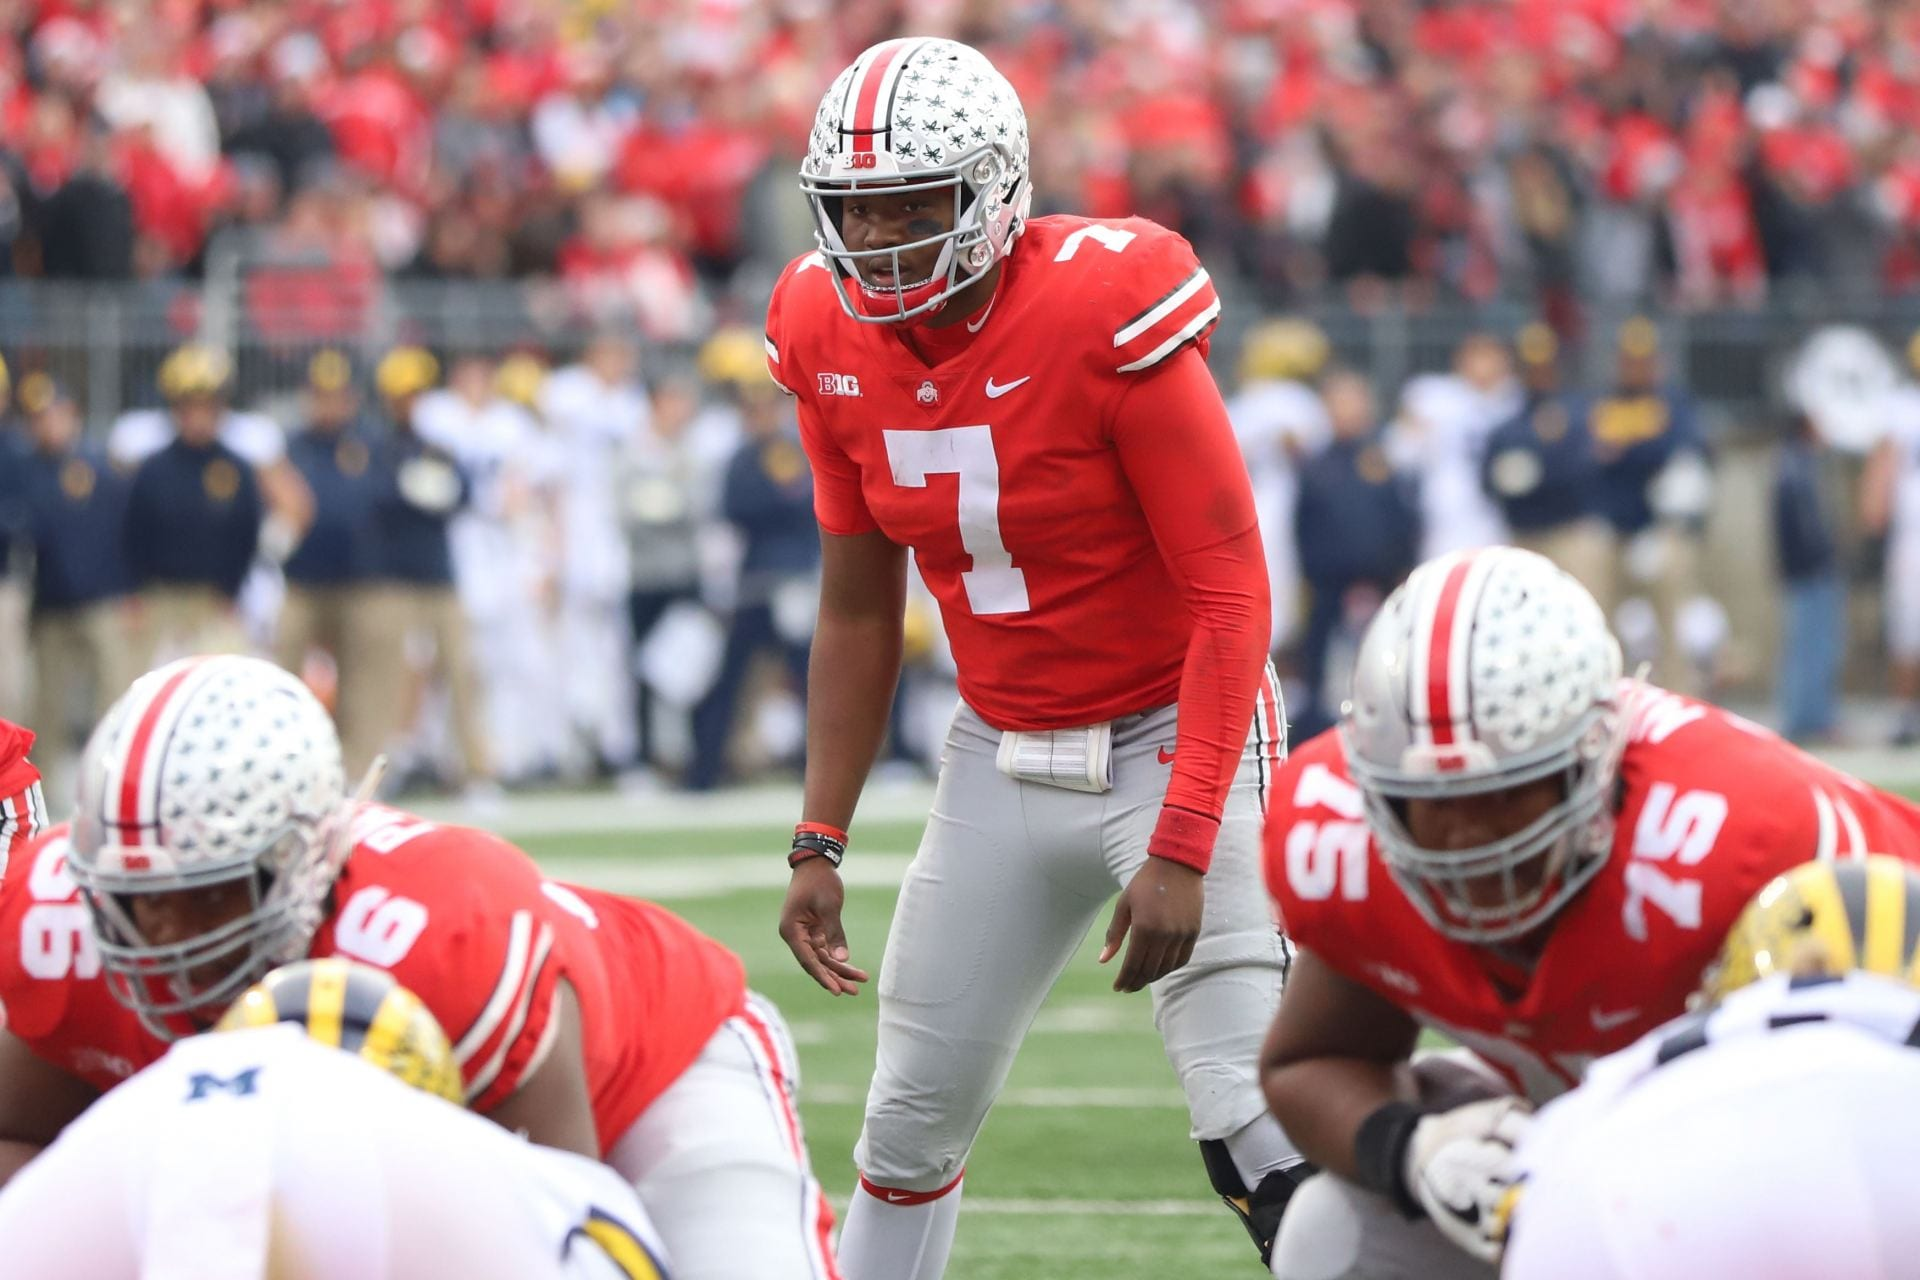 d23940df41 Ohio State redshirt sophomore quarterback Dwayne Haskins (7) gets ready for  the play during the second half of the game against Michigan on Nov. 24.